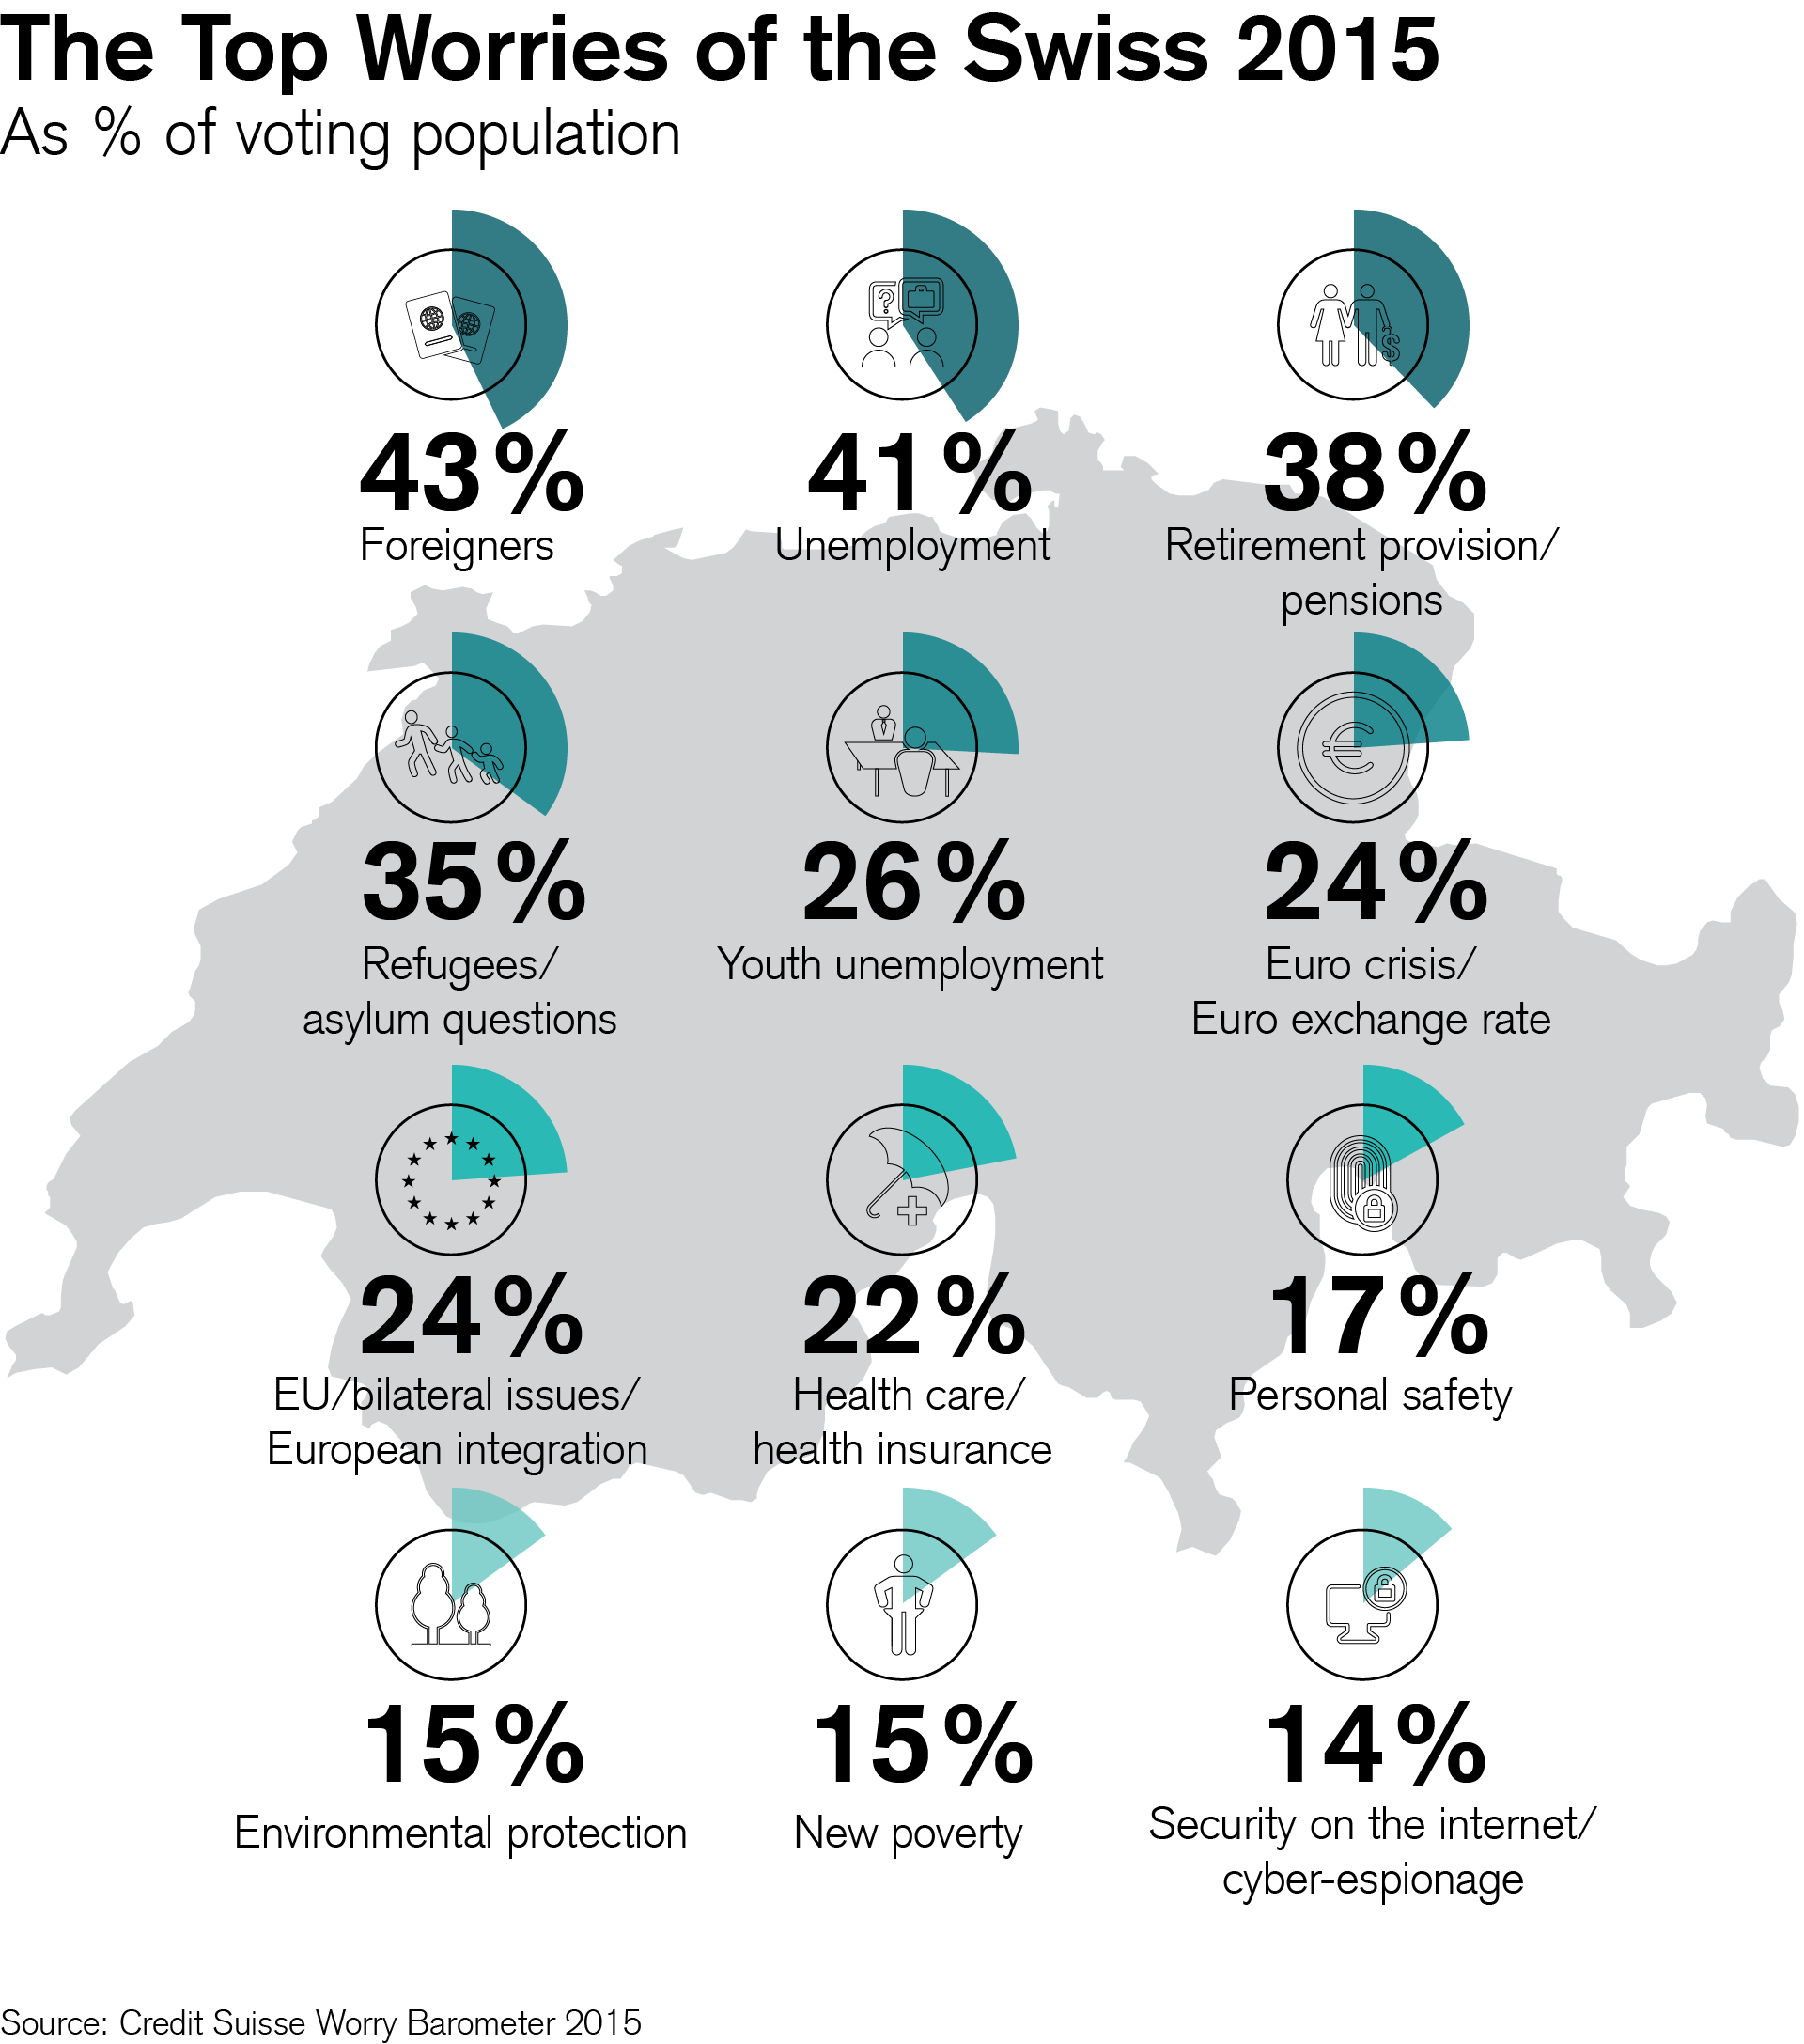 The Top Worries of the Swiss 2015